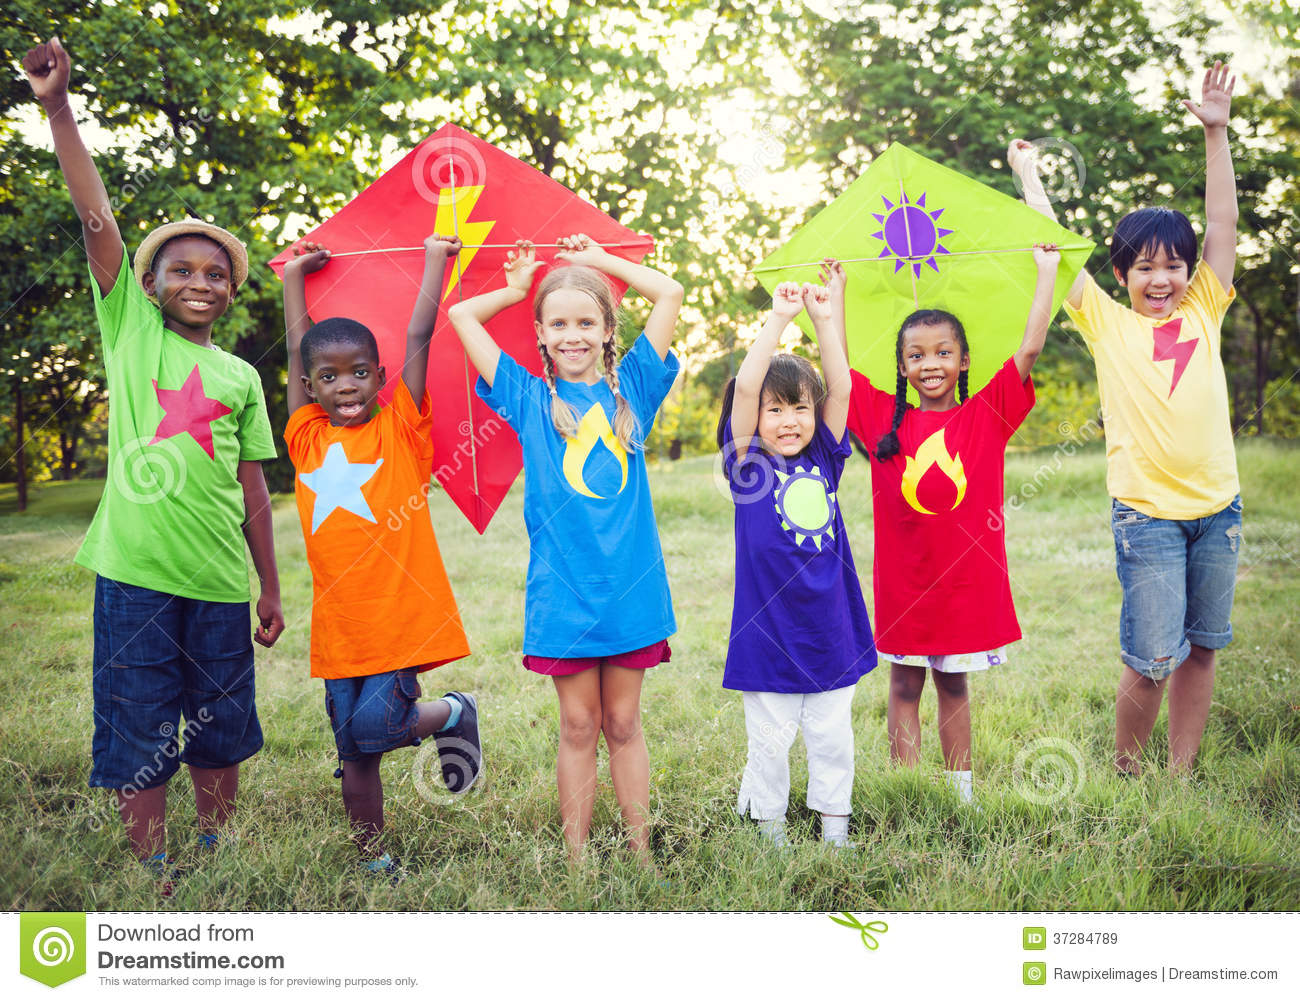 Children playing superheroes with kites.